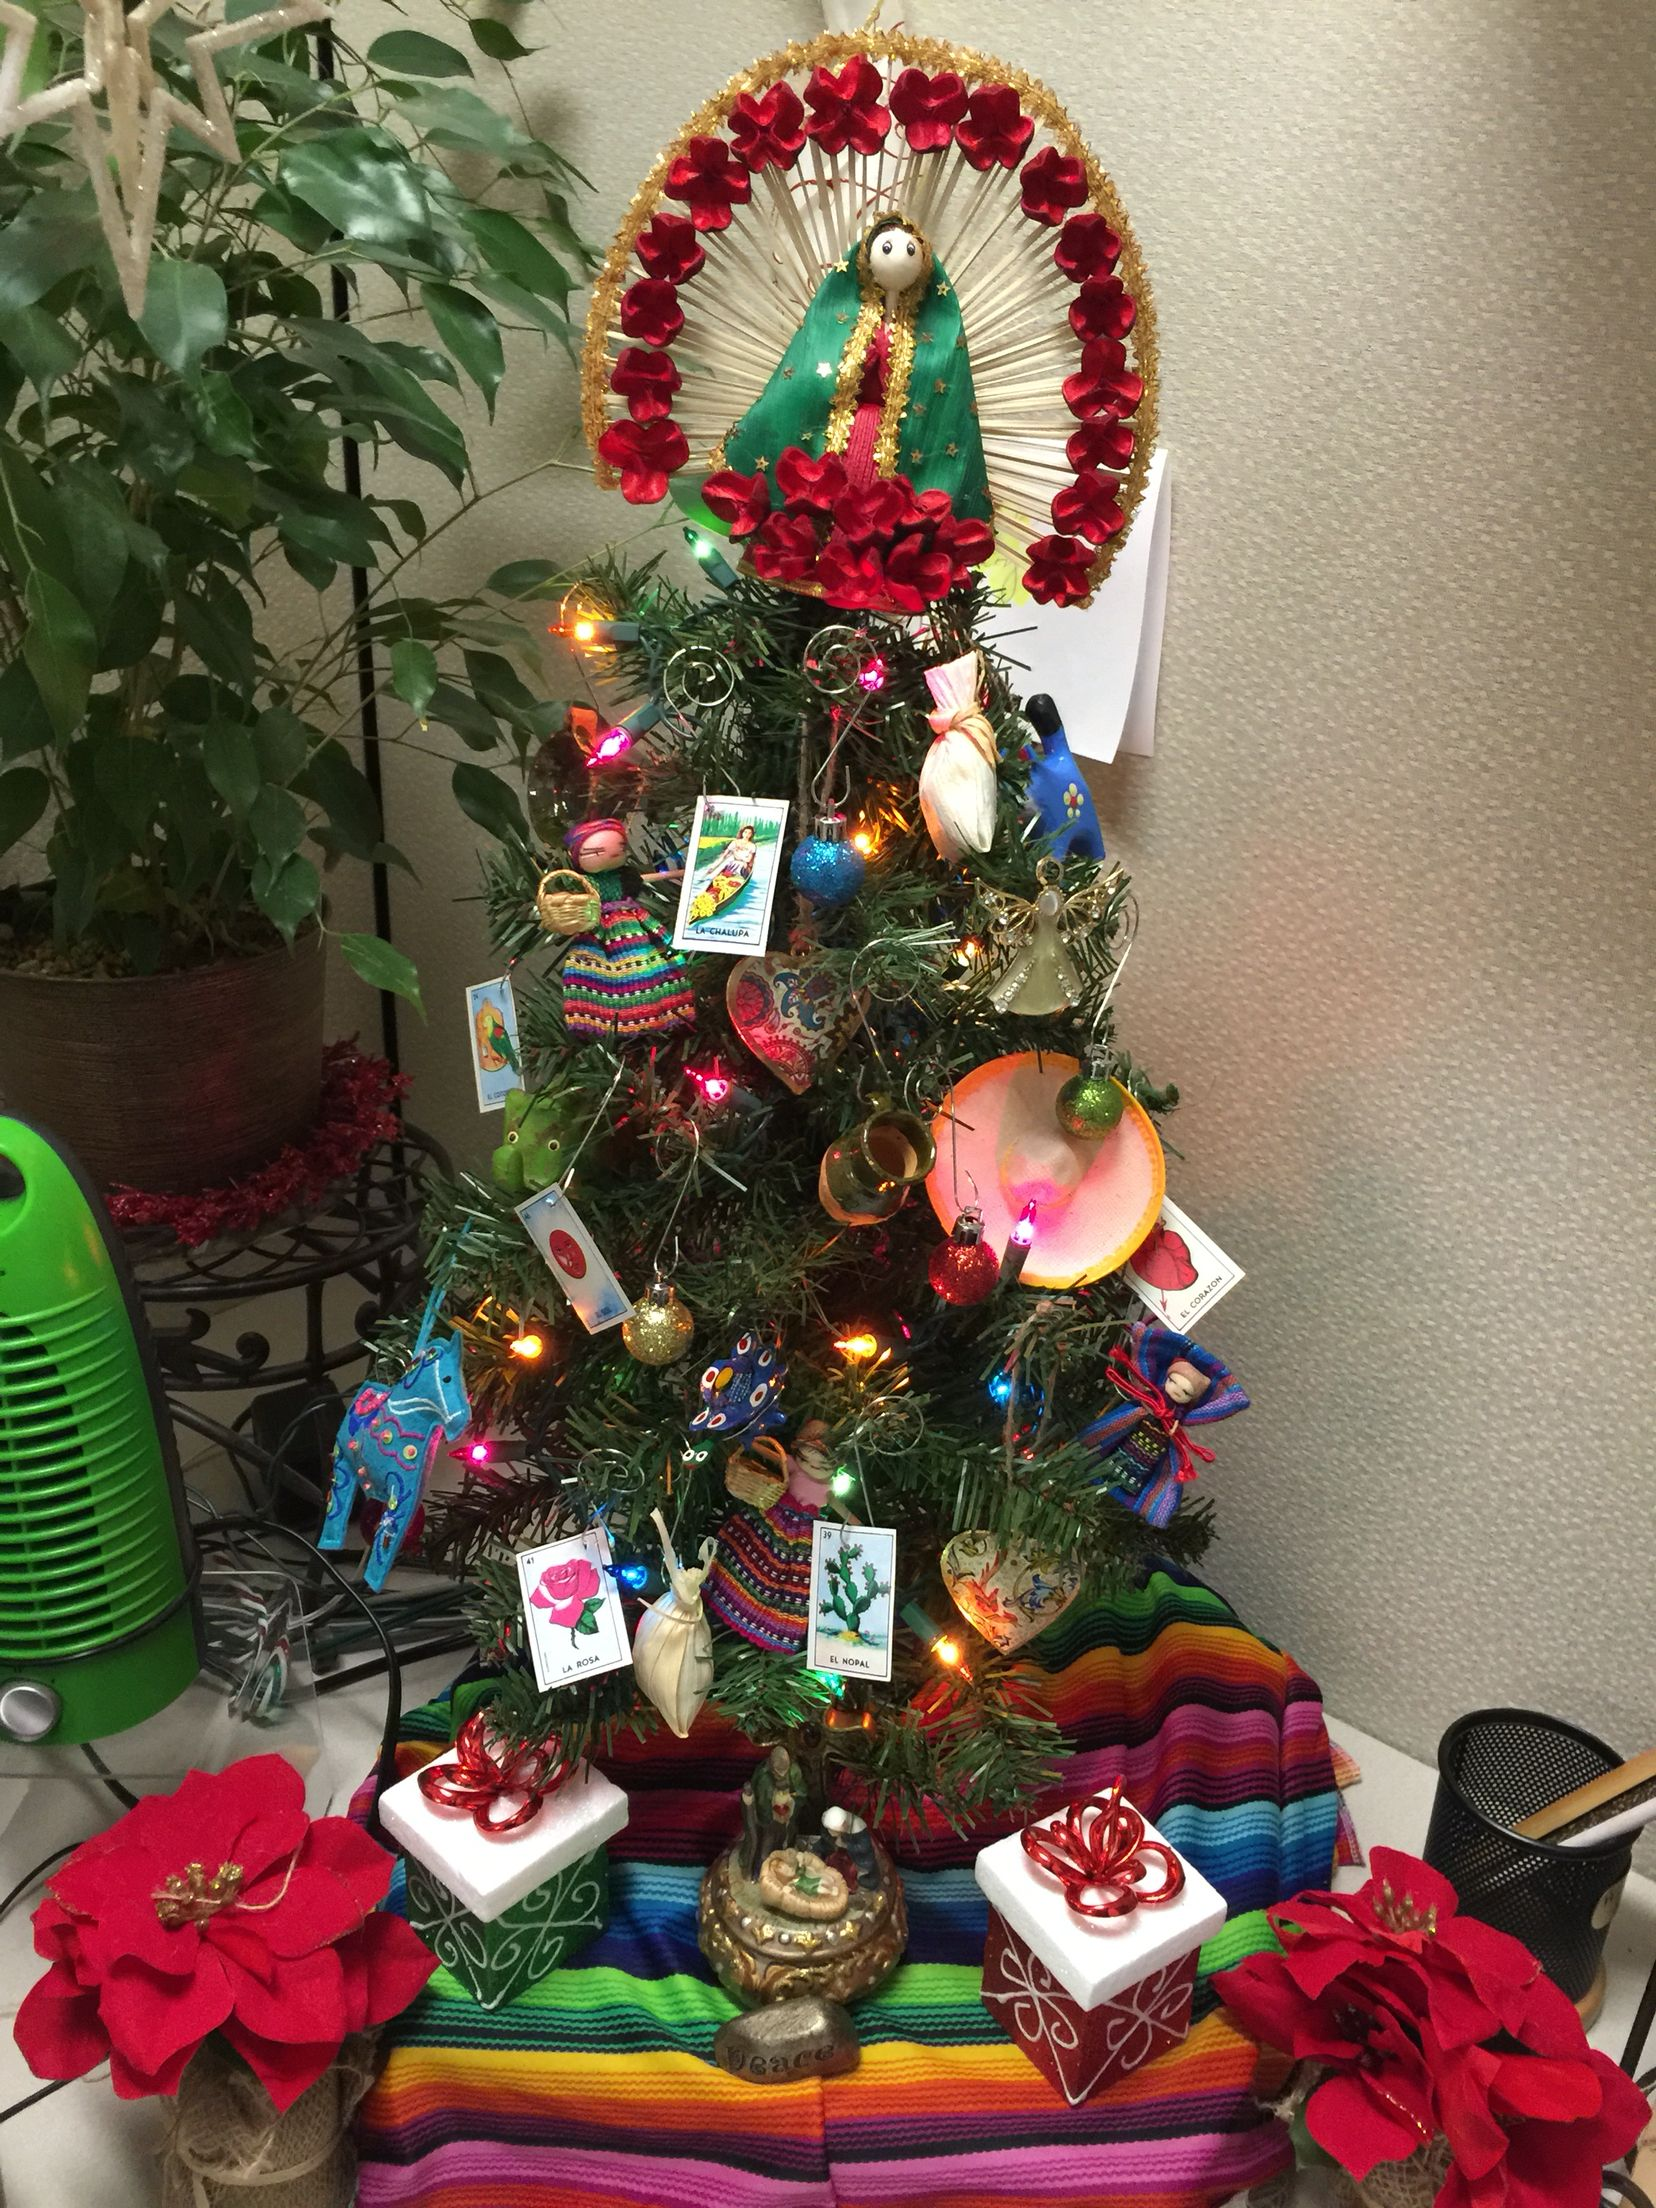 My Mexican Christmas tree at work. #mexicanchristmas ...